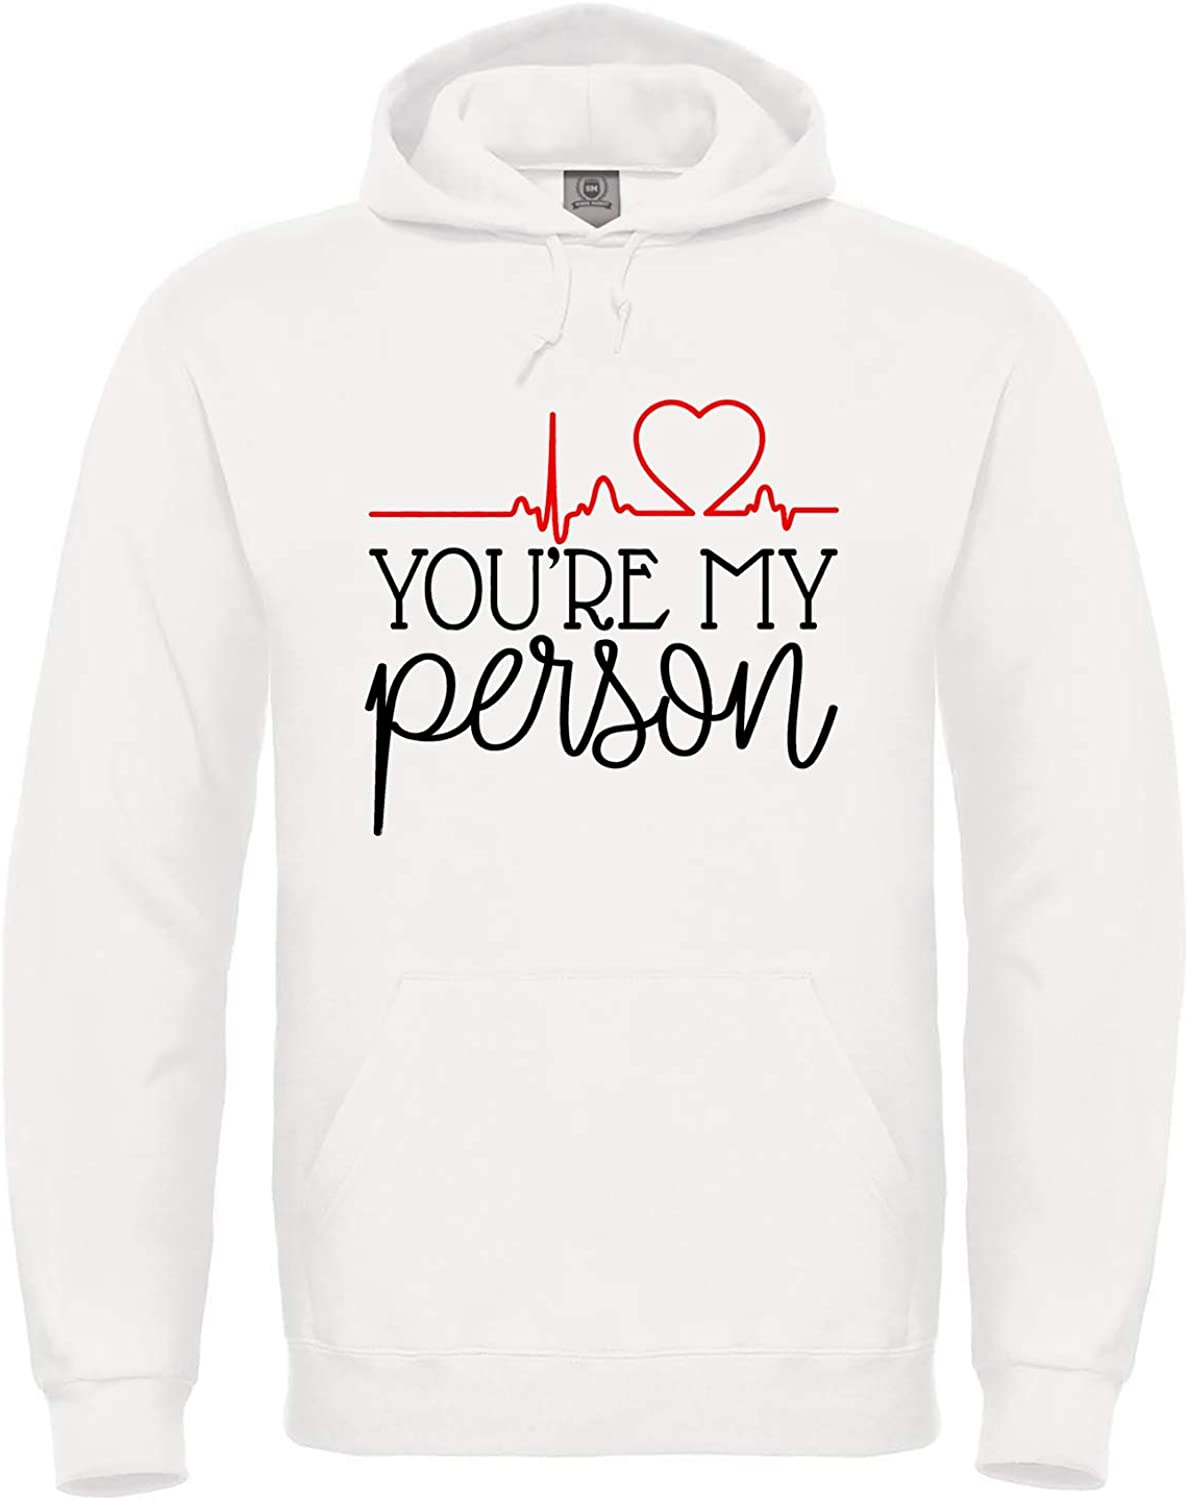 100/% Cotone Alta qualit/à Taglie Adulto e Bambino Youre My Person Donna Greys Anatomy T-Shirt You Are My Person Ver.1 -MOD